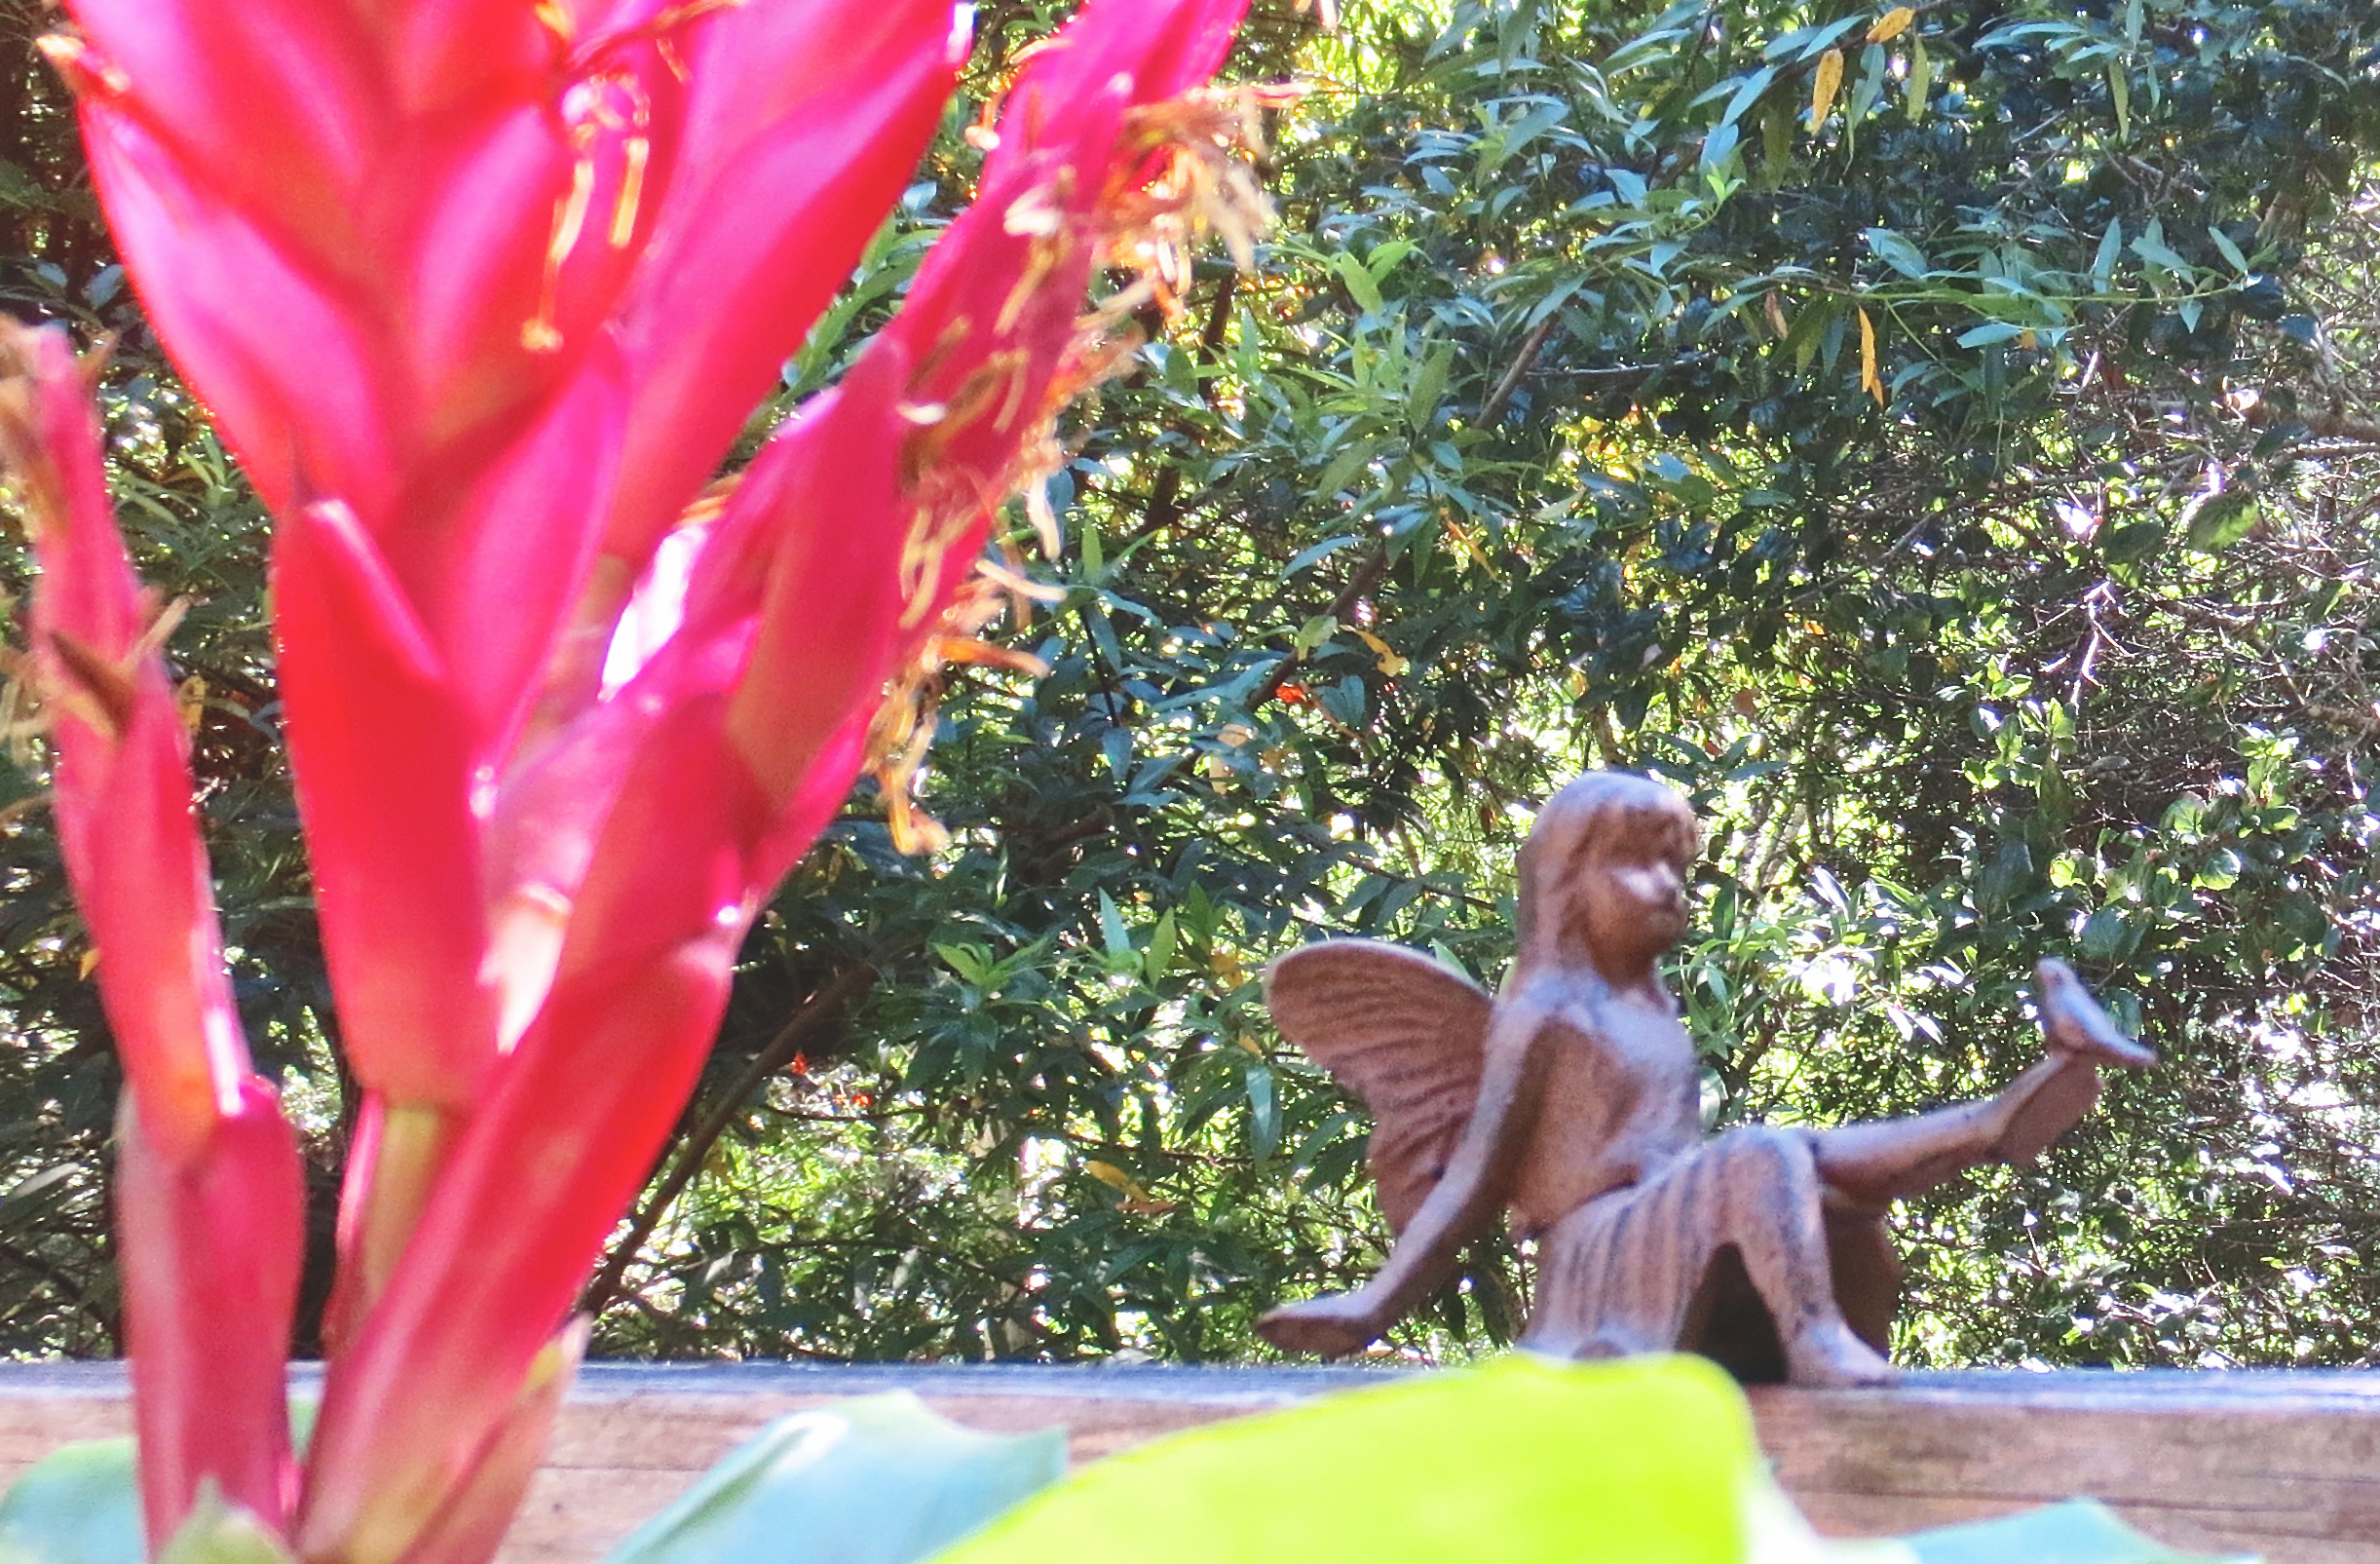 Angel in the garden